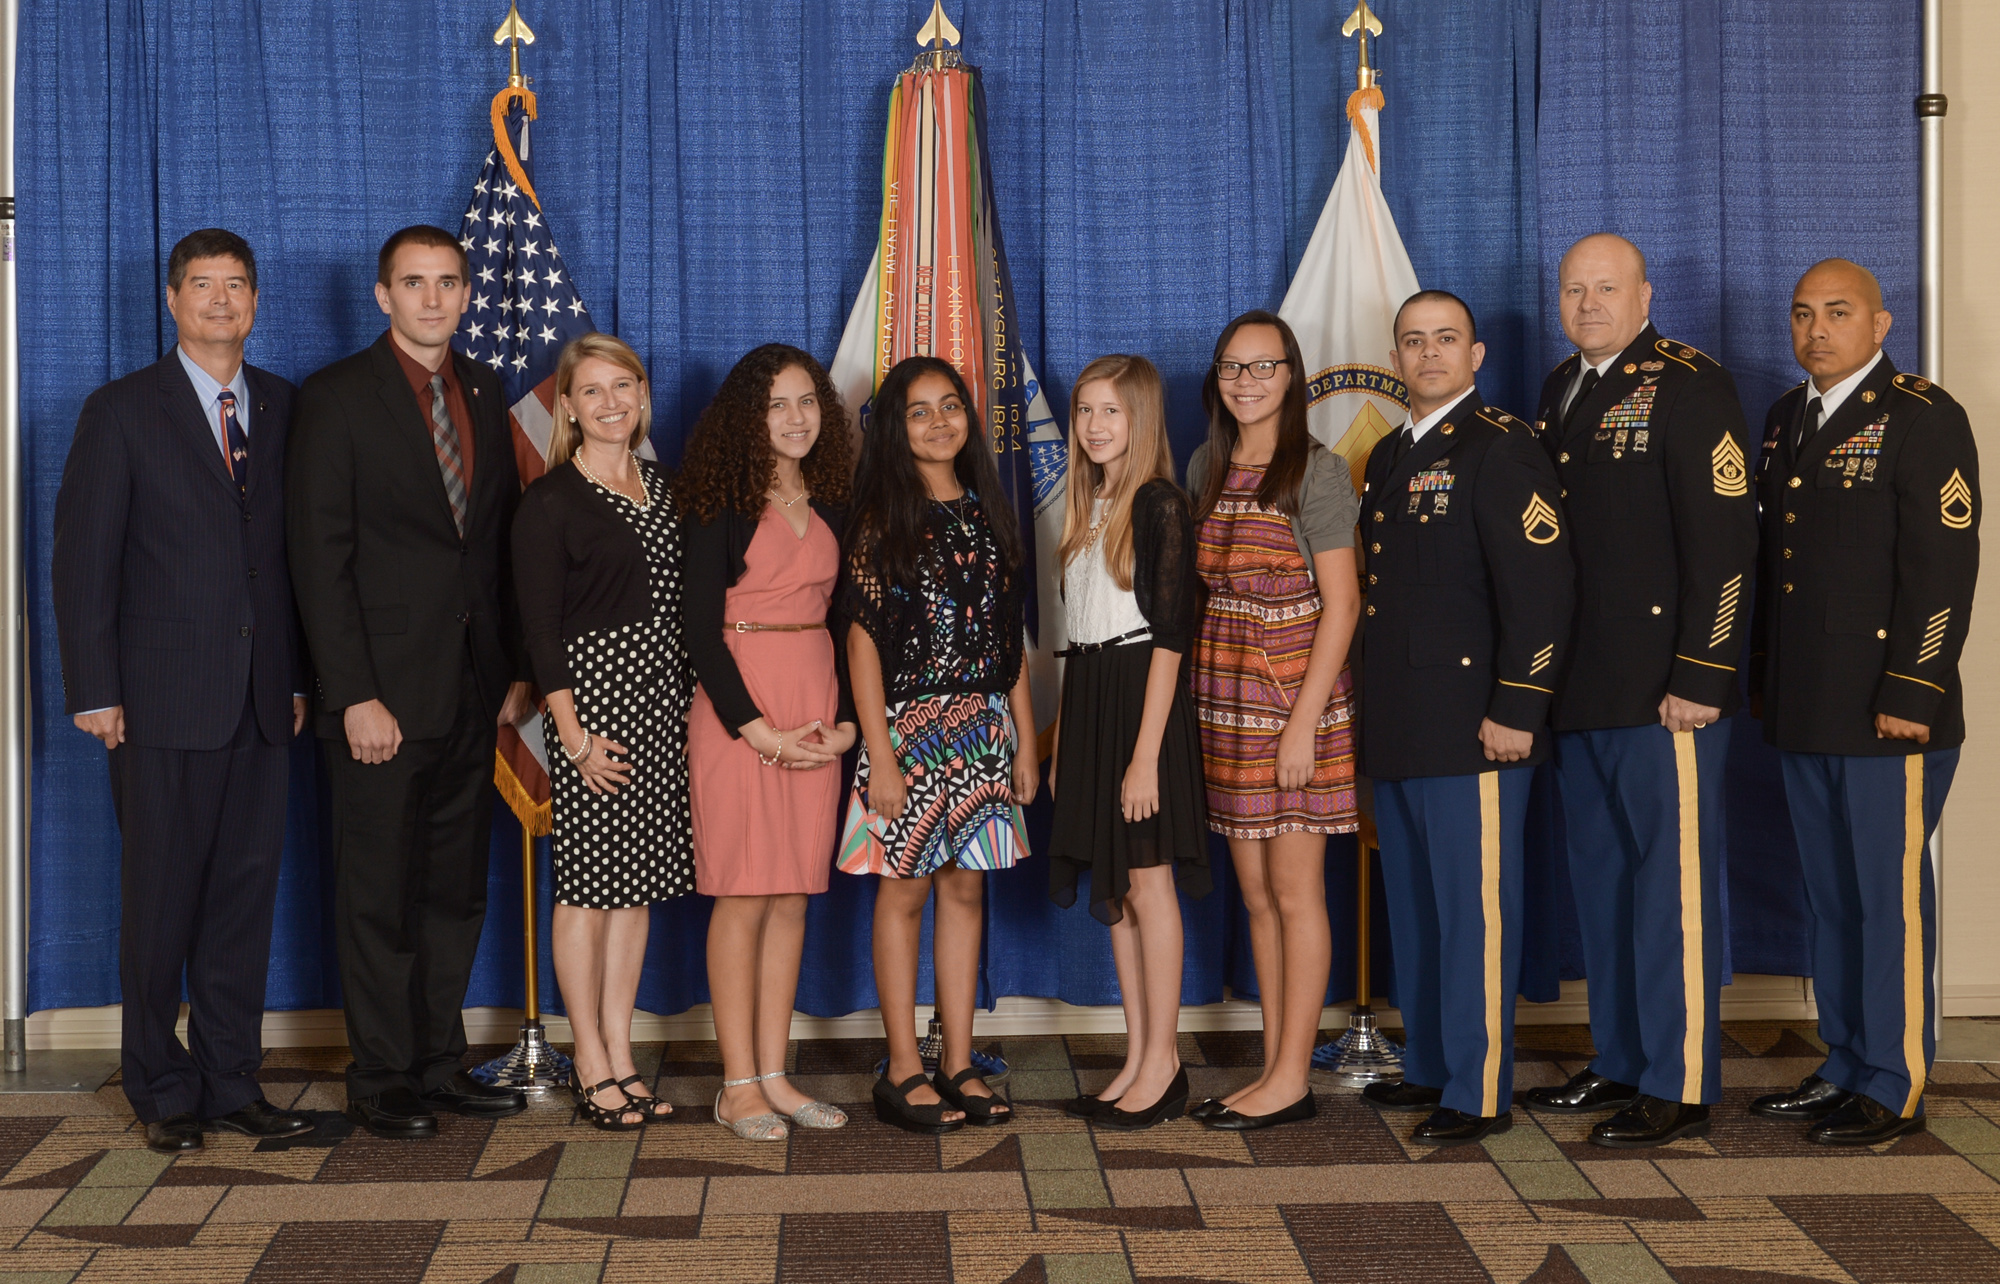 From left to right, Jyuji Hewitt, Frank Bohn, Ingrid Rapatz-Roettger, Janat Khan, Luz Figueroa-Rodriguez, Janeliz Guzman Acevedo, Bria Roettger, Sgt. 1st Class Jose Roldan, Command Sgt. Maj. James Snyder and Sgt. 1st Class Ernest Robledo. Khan, Figueroa-Rodriguez, Acevedo and Roettger, sixth-graders from Puerto Rico, make up Team Las Chicas and won the eCybermission national competition in 2016 for their work on an interactive website that serves as a warning system for people in their community who suffer with respiratory issues from the effects of Saharan dust. (U.S. Army photo)